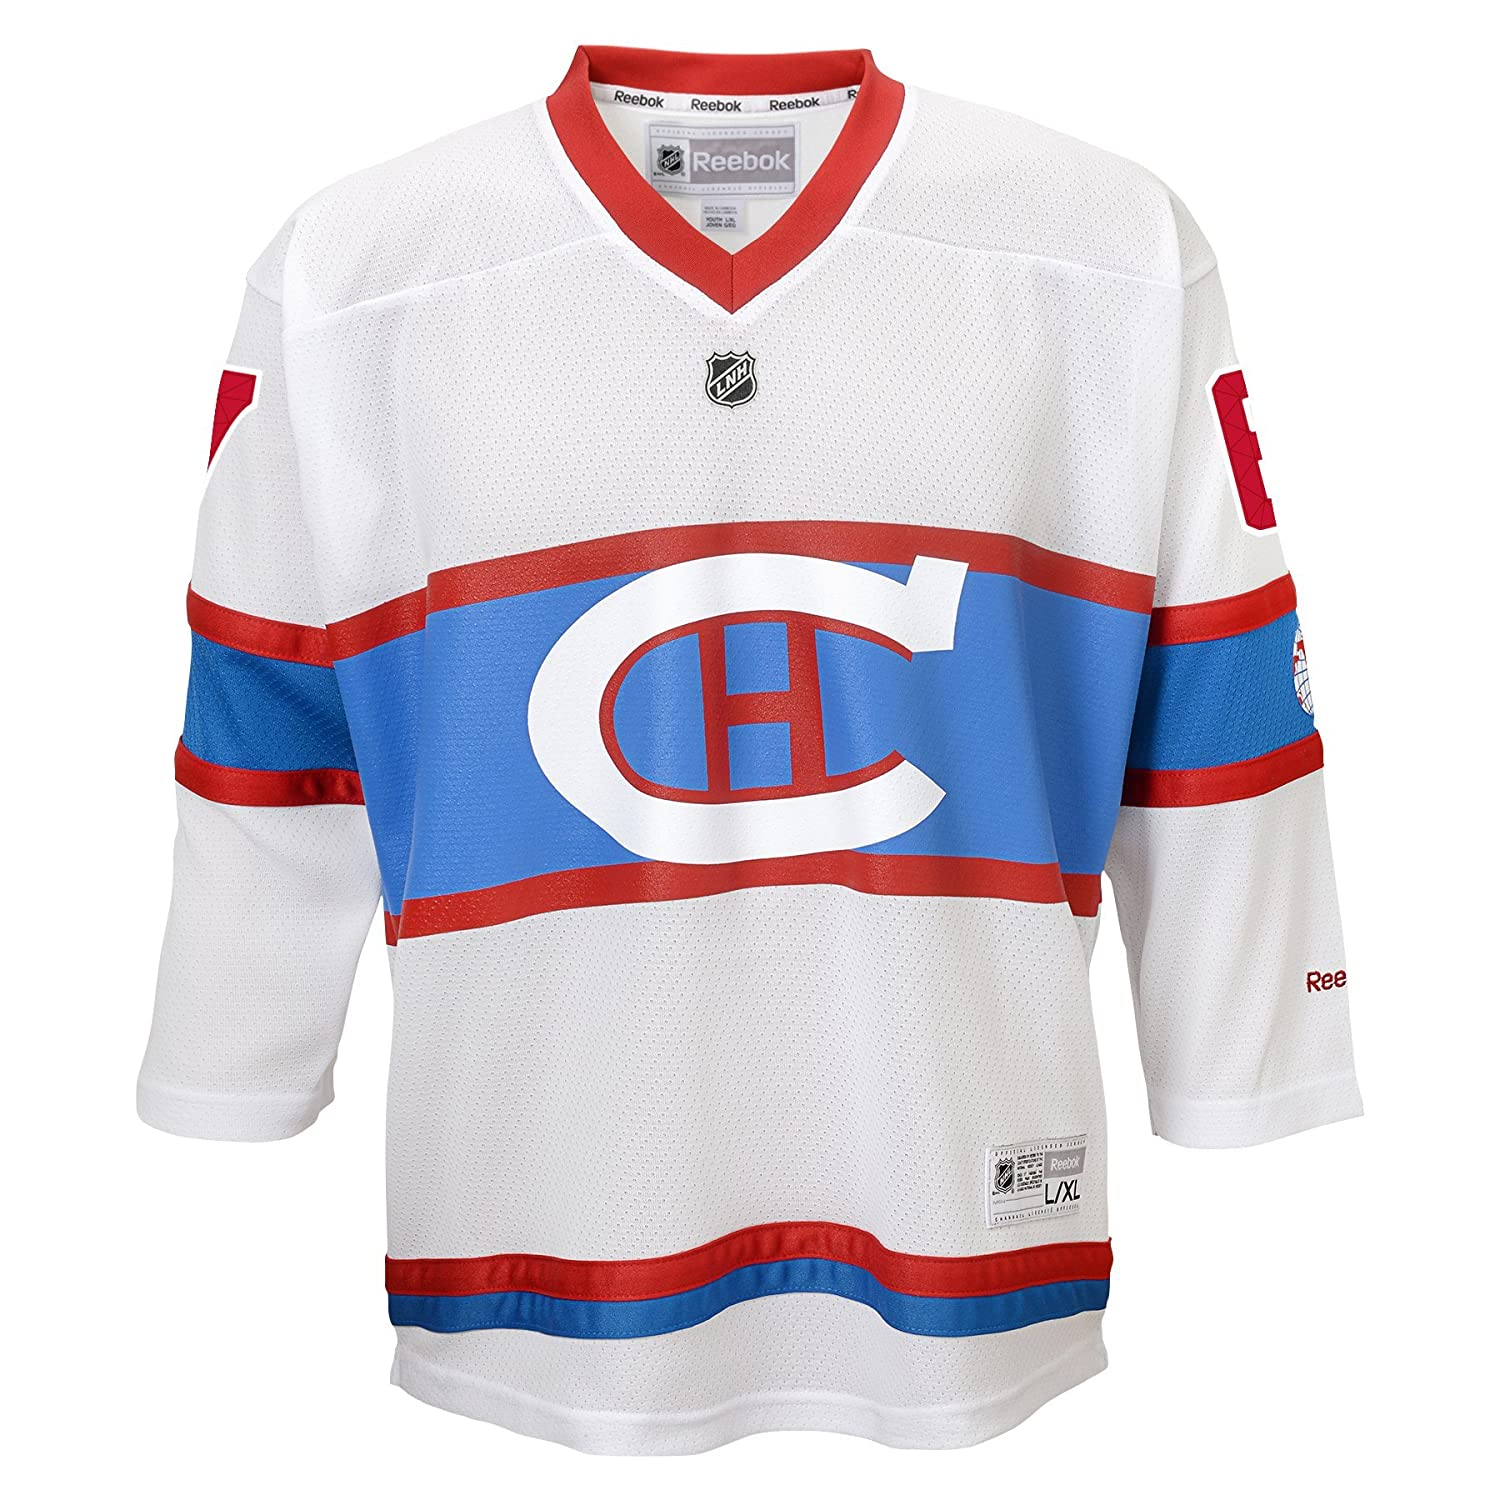 9fd61320bf849 Amazon.com : NHL Montreal Canadiens Max Pacioretty #67 Boys 4-7 ...